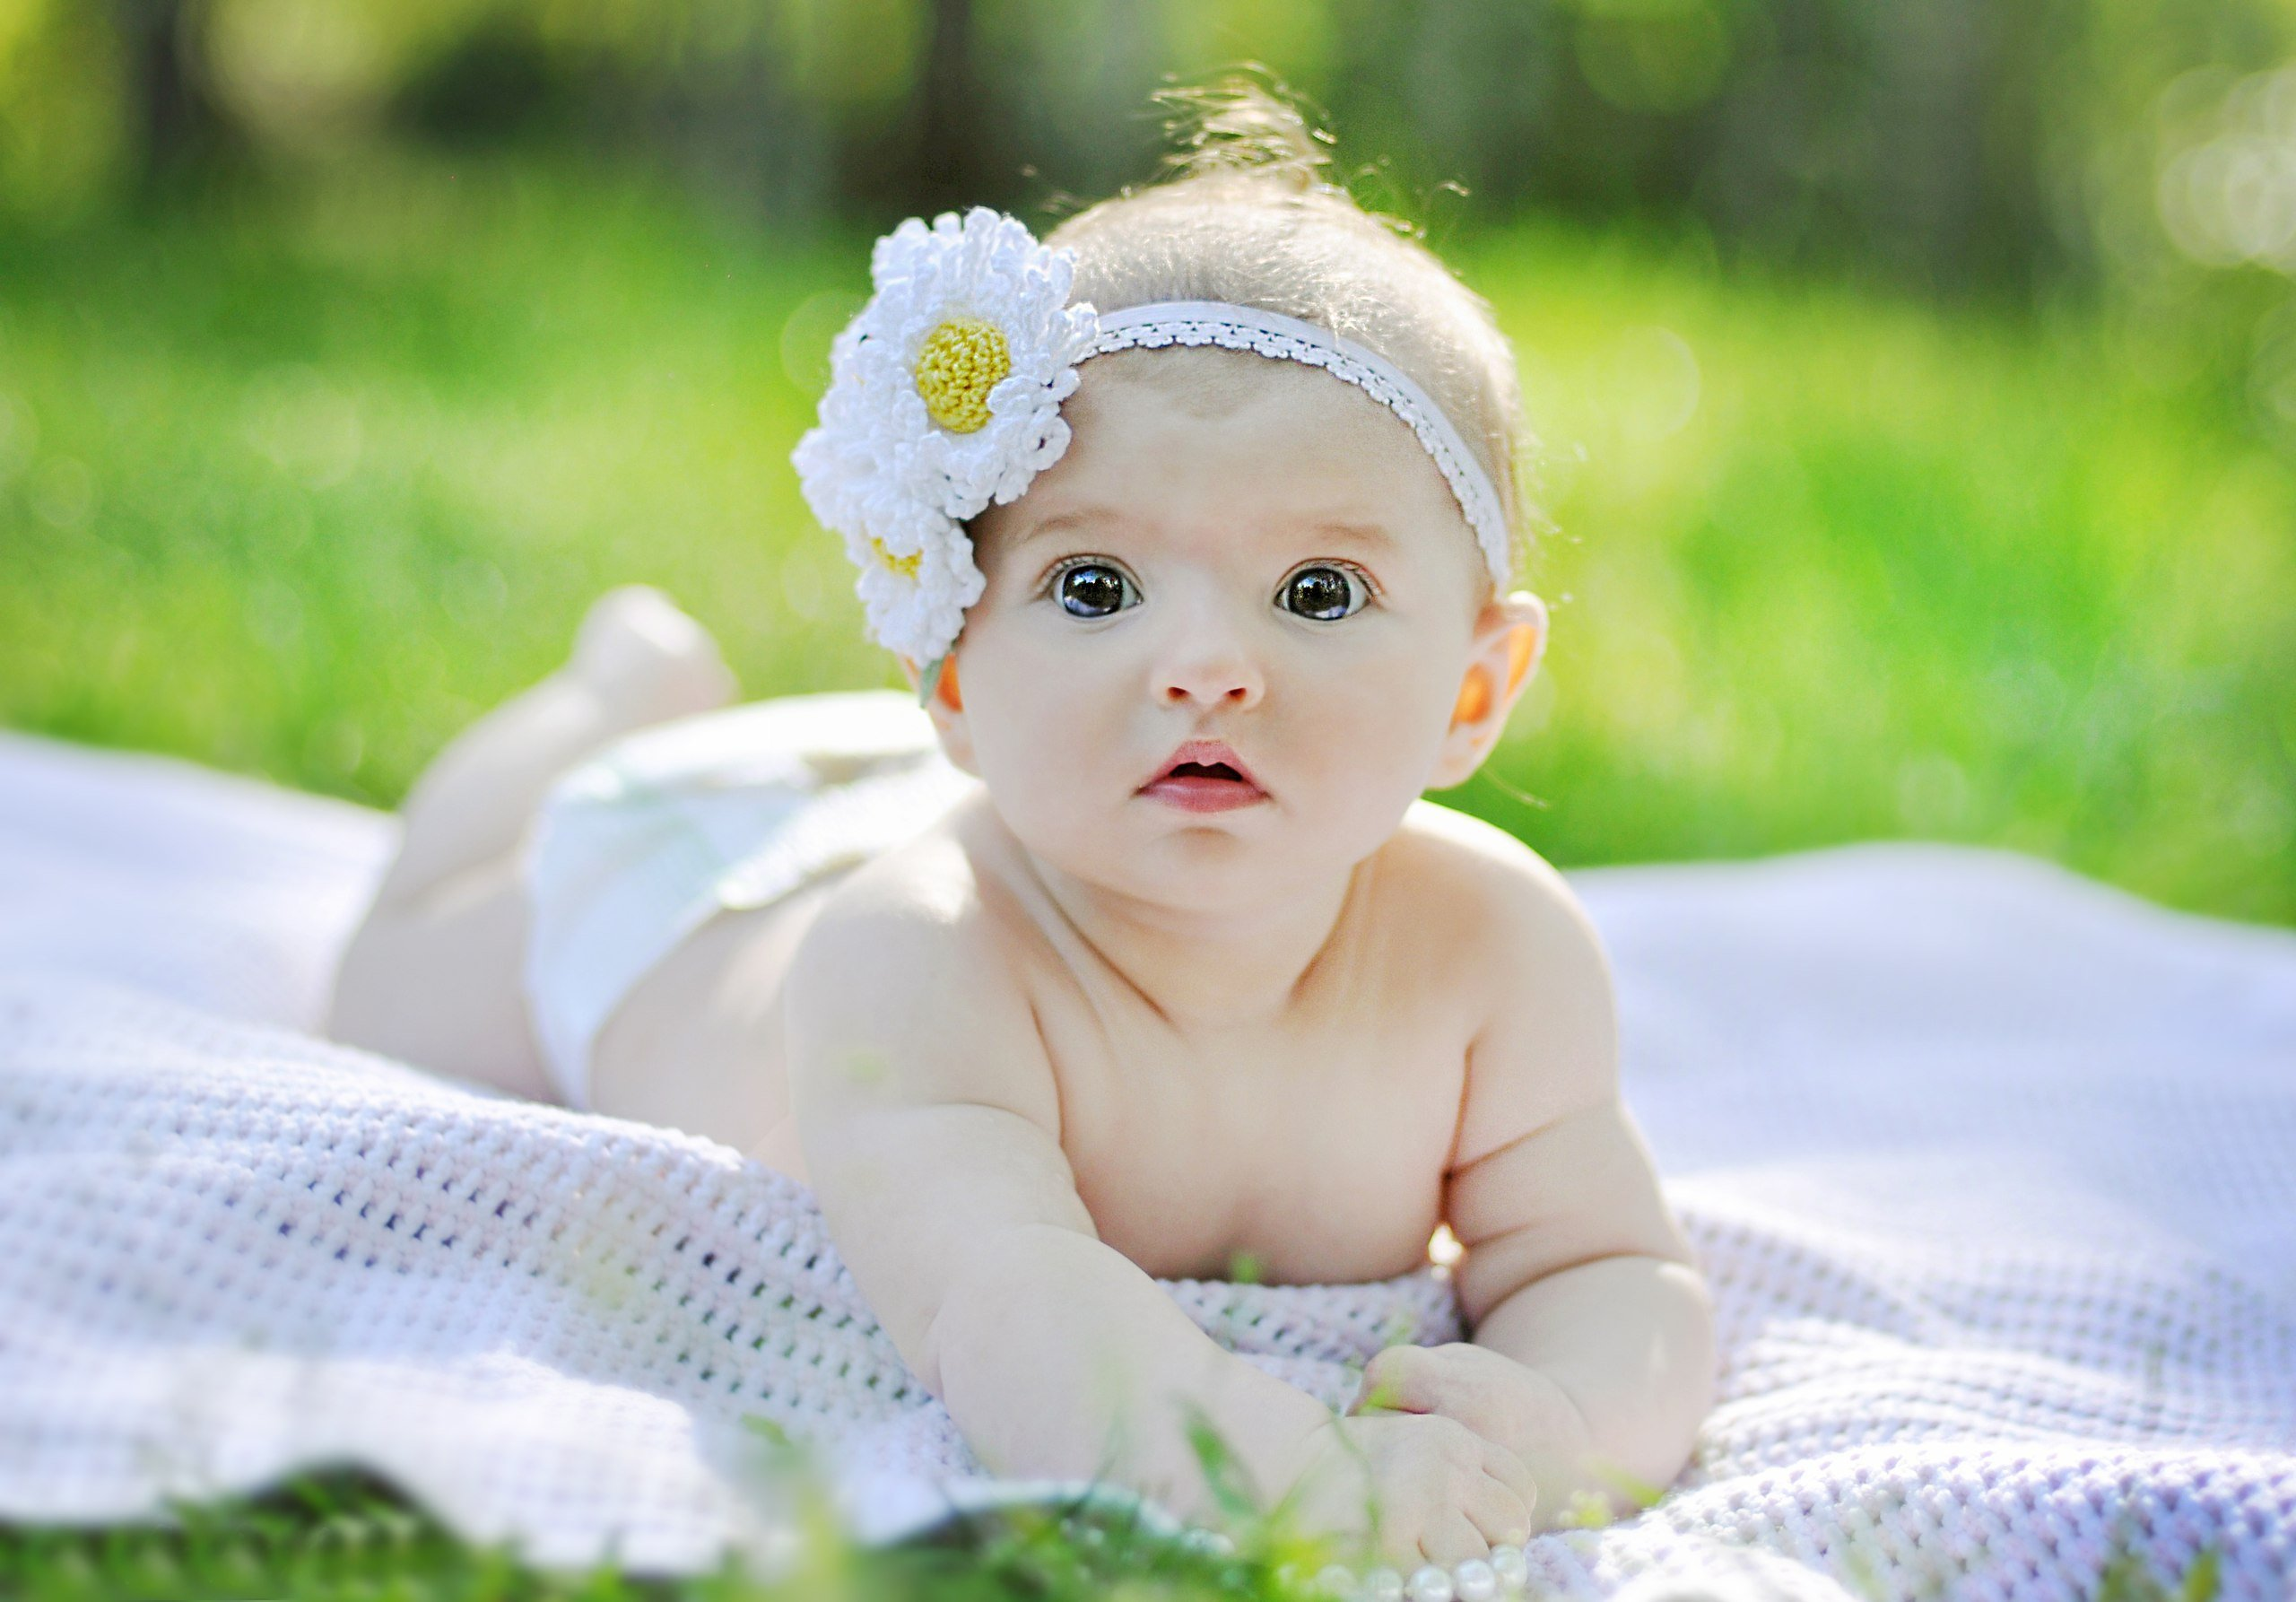 outdoor cute babies girls photography | hd wallpapers | wallpapers